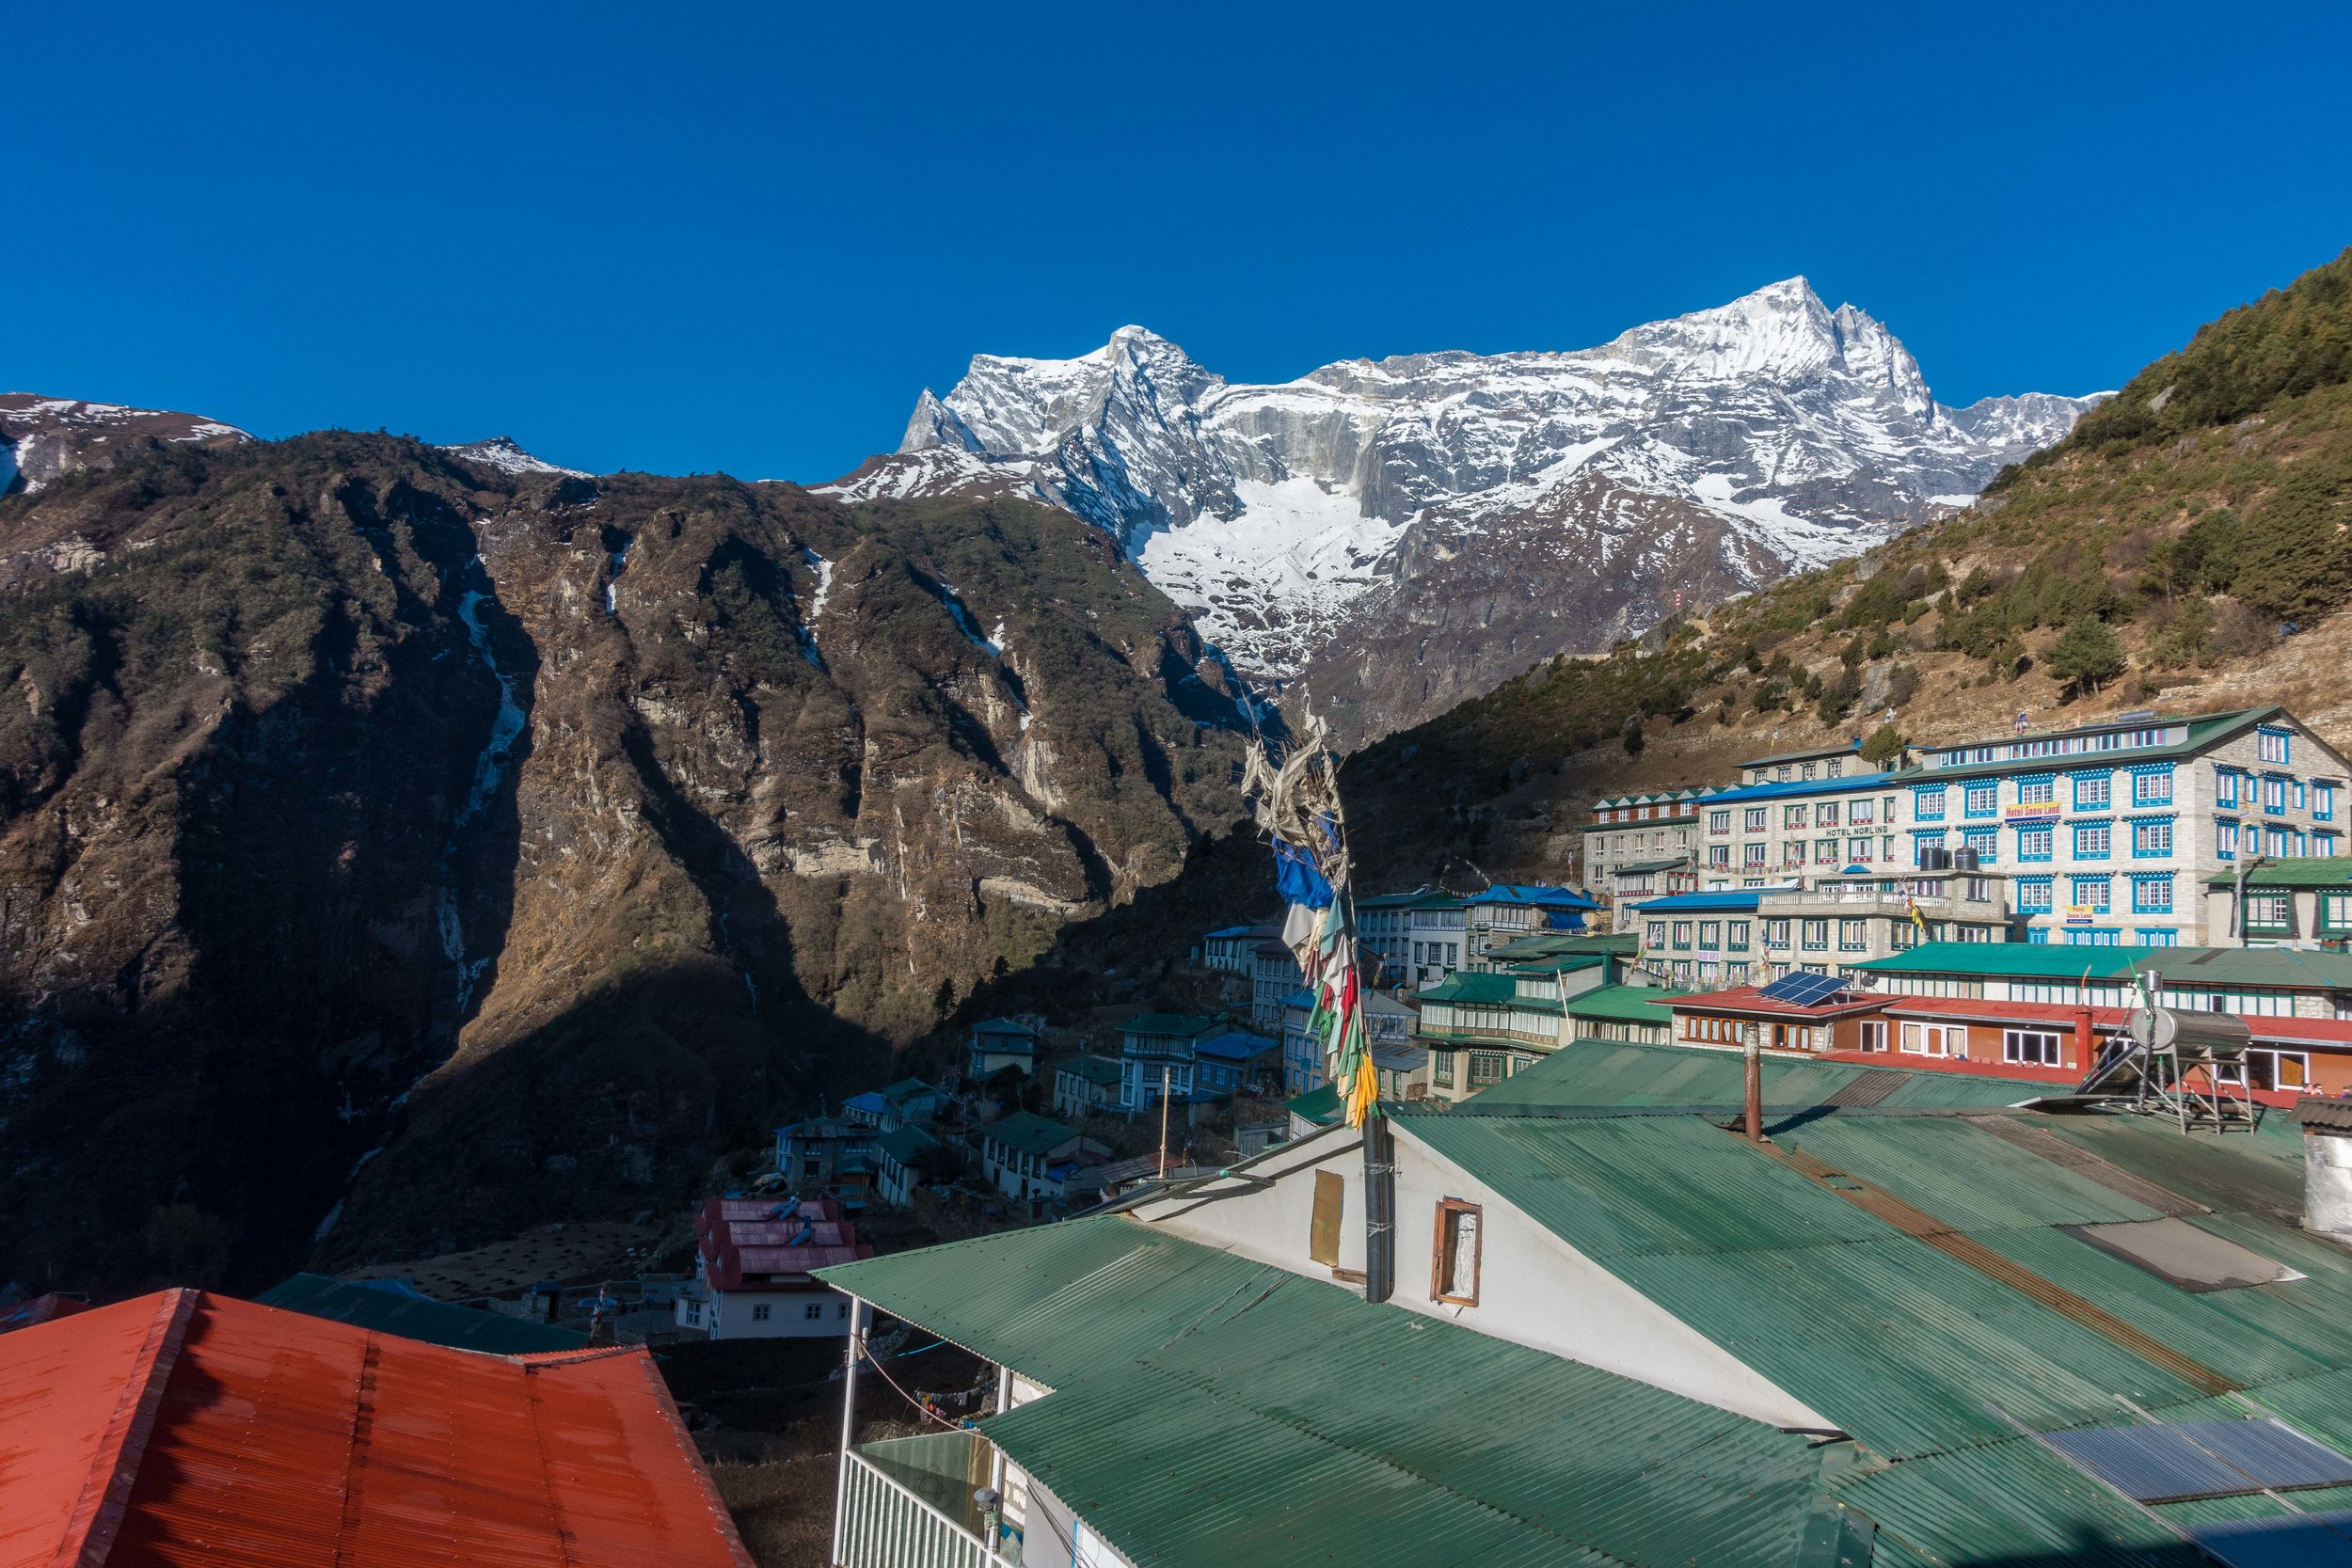 Kongde Ri (20,299'; 6,187 m) across the valley from Namche Bazar